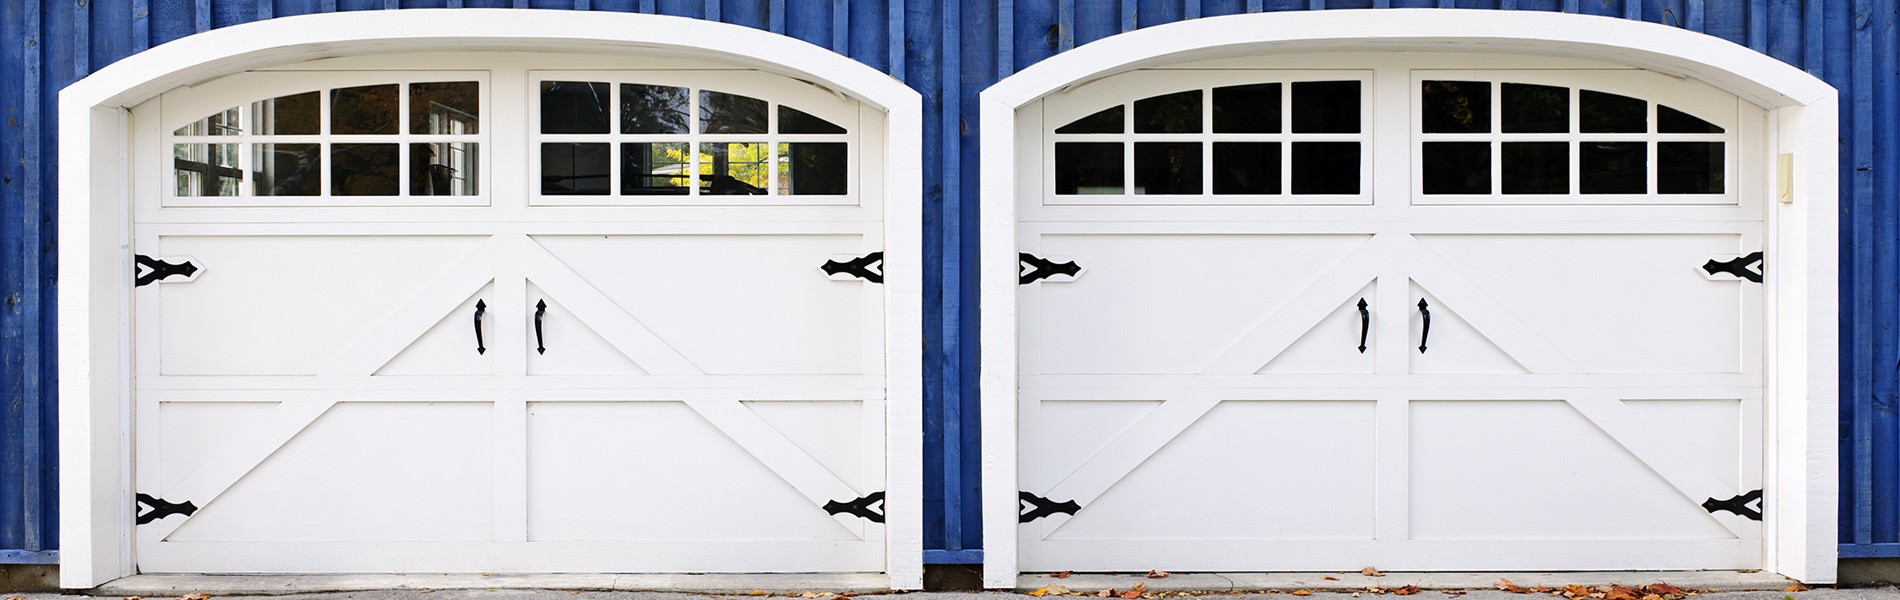 Metro Garage Door Service, Decatur, GA 404-845-7394